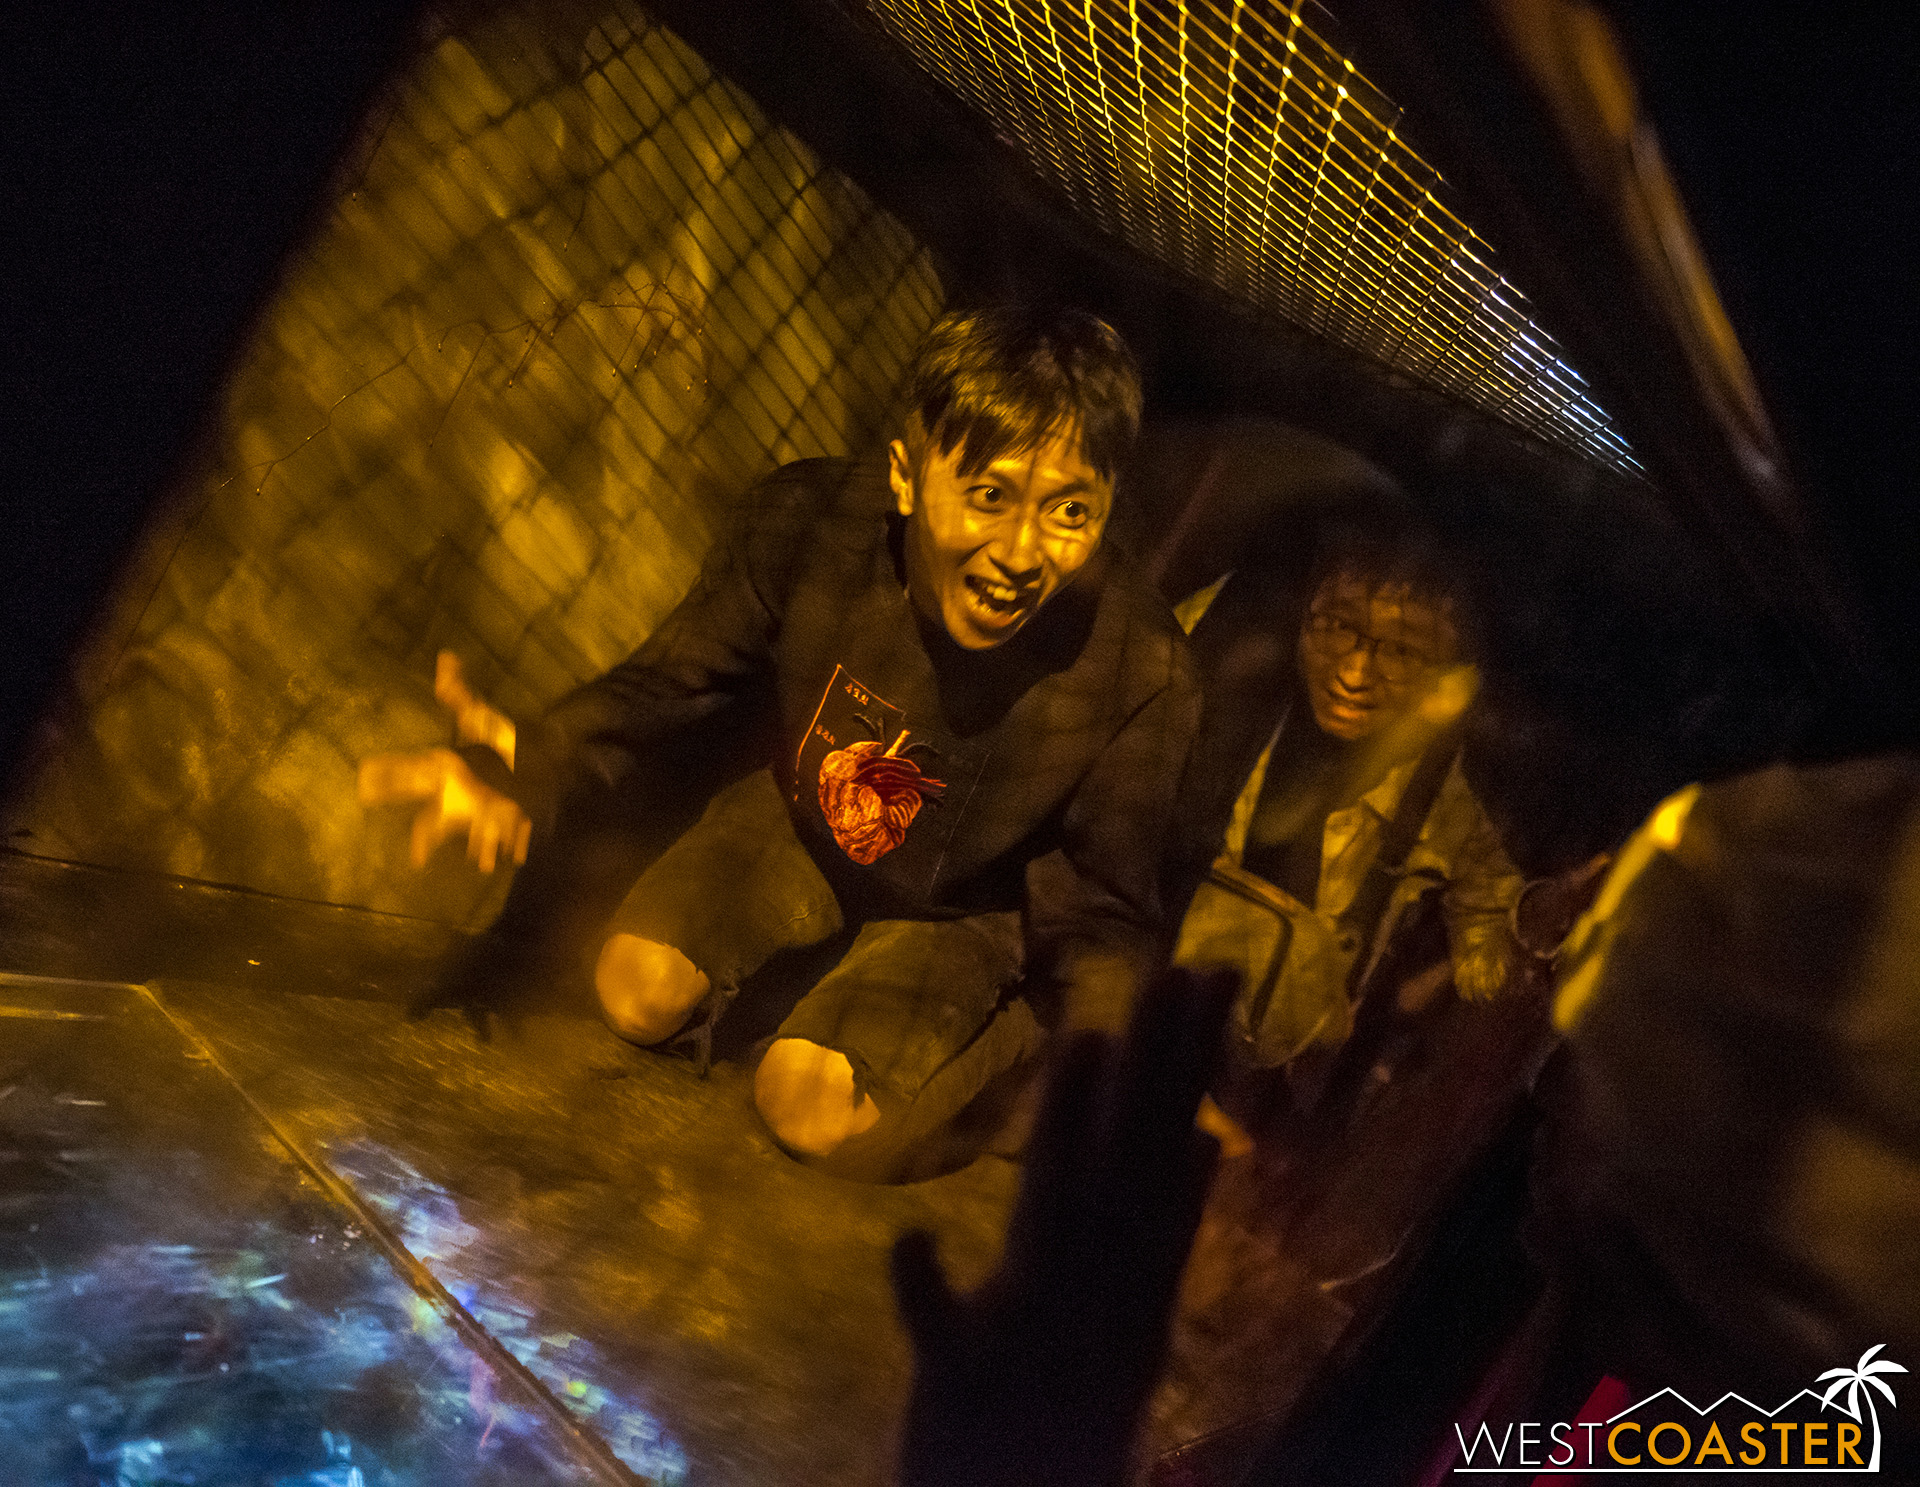 Unlucky guests will have to crawl through a tunnel normally reserved for slaughtering livestock.